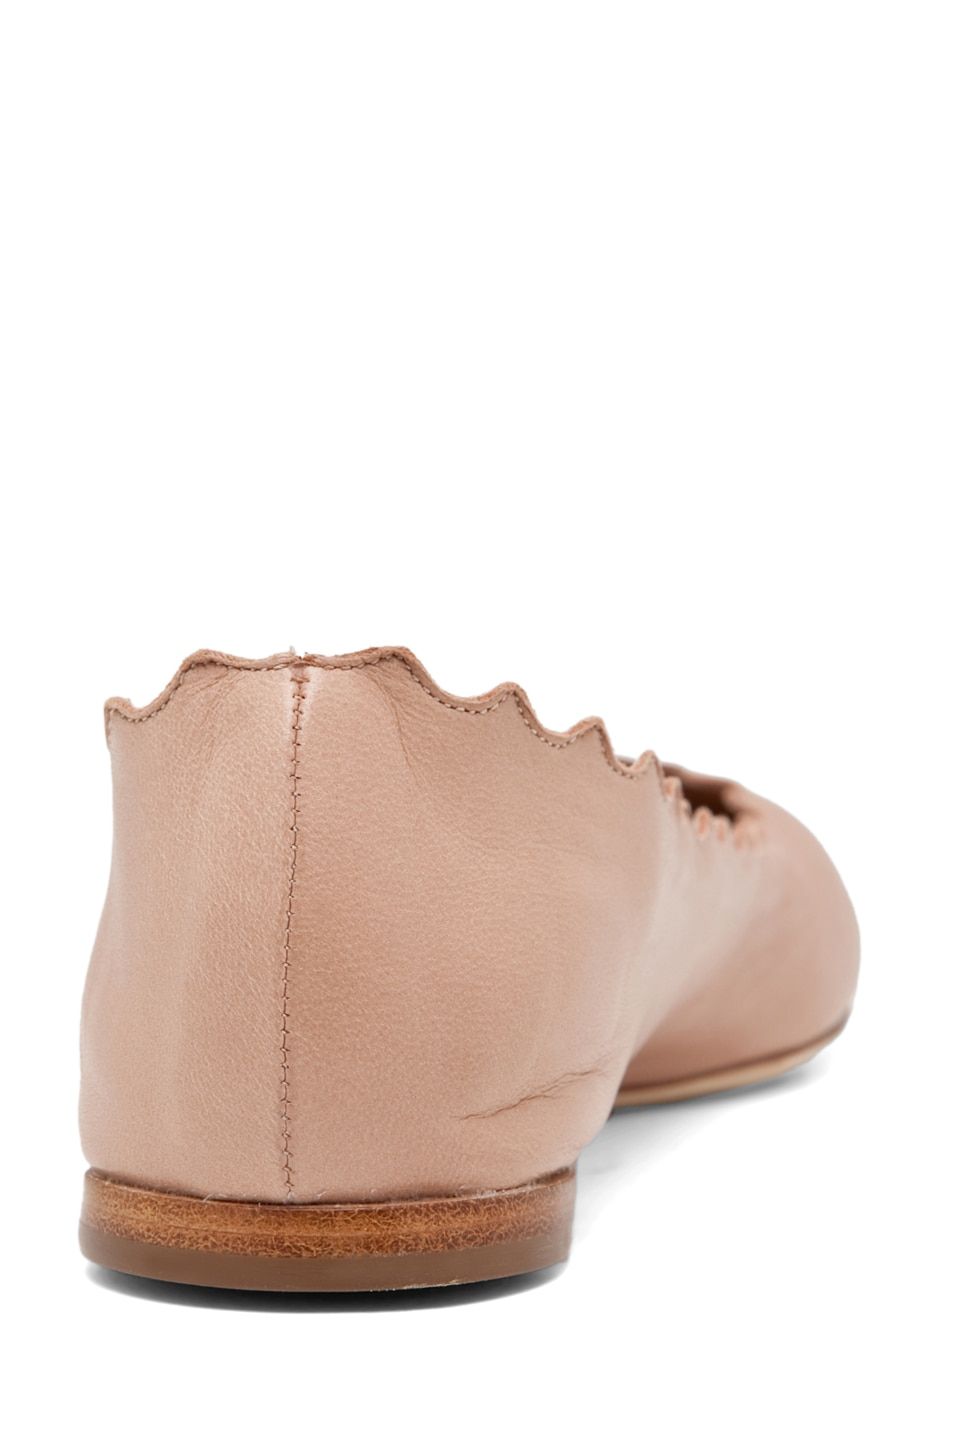 Image 3 of Chloe Leather Scalloped Flats in Nude